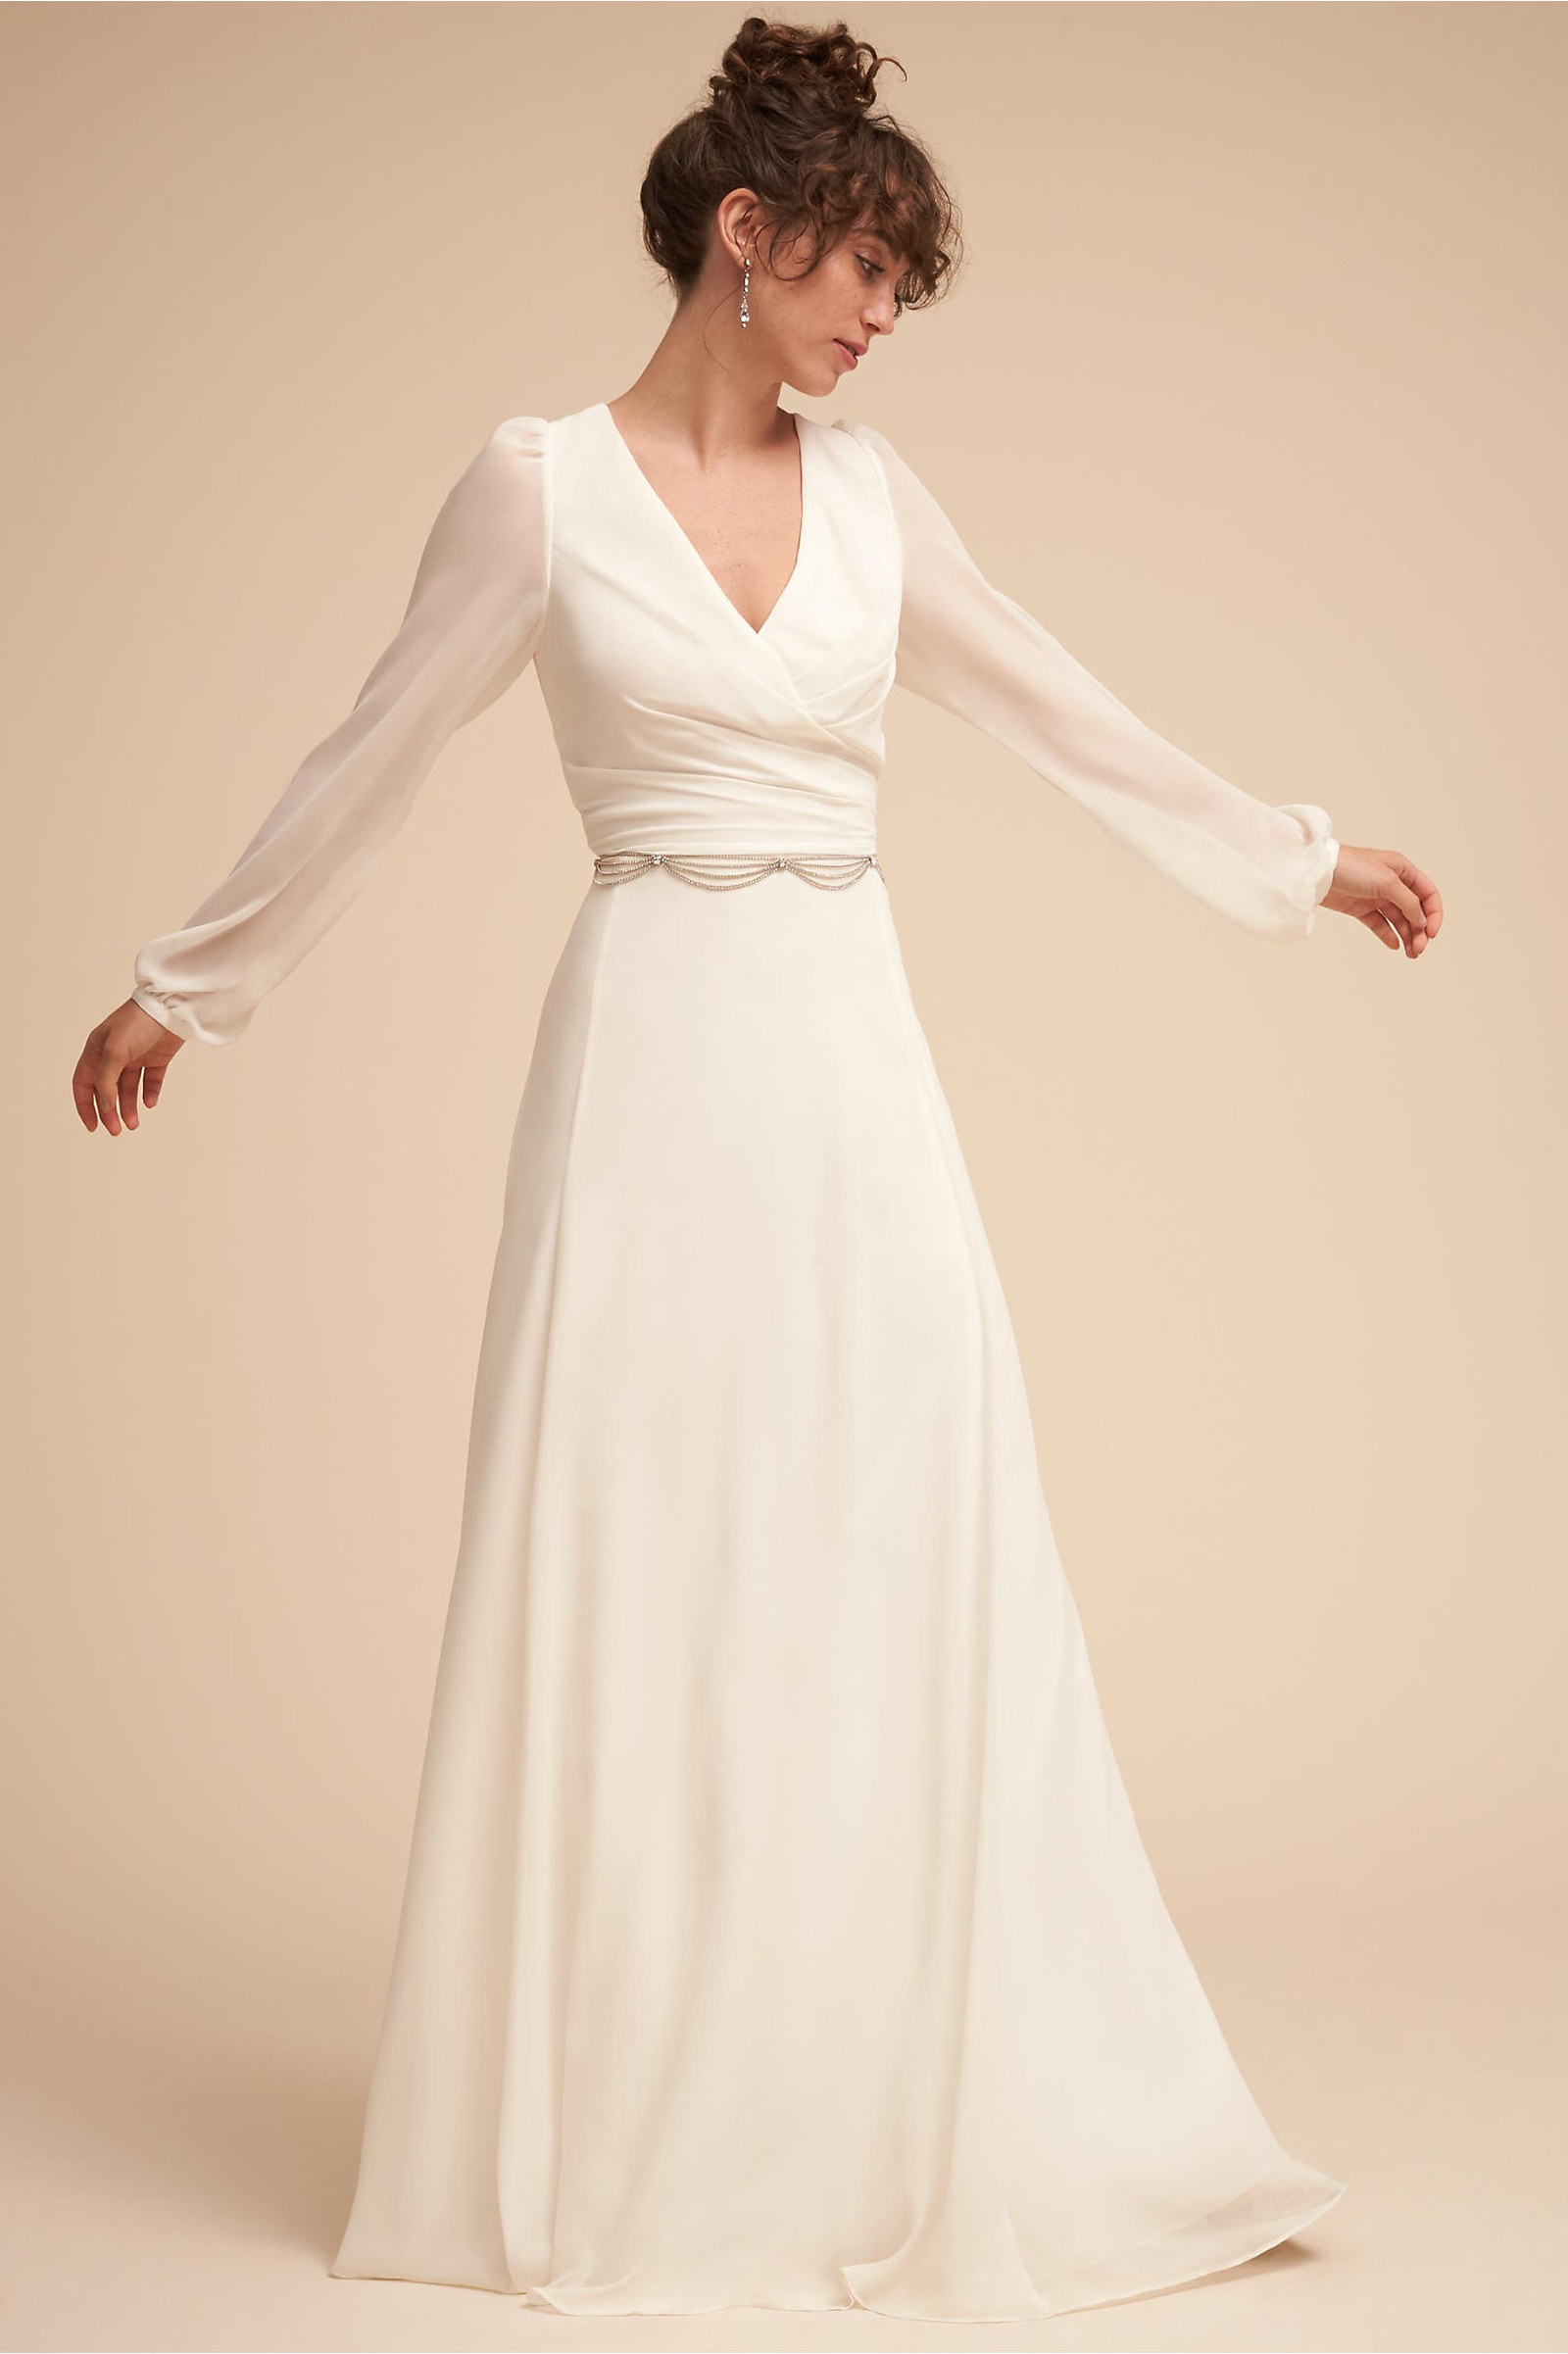 49a8c87581c Bhldn  AKA the wedding shop where boring dresses are as unwelcome as vowels.